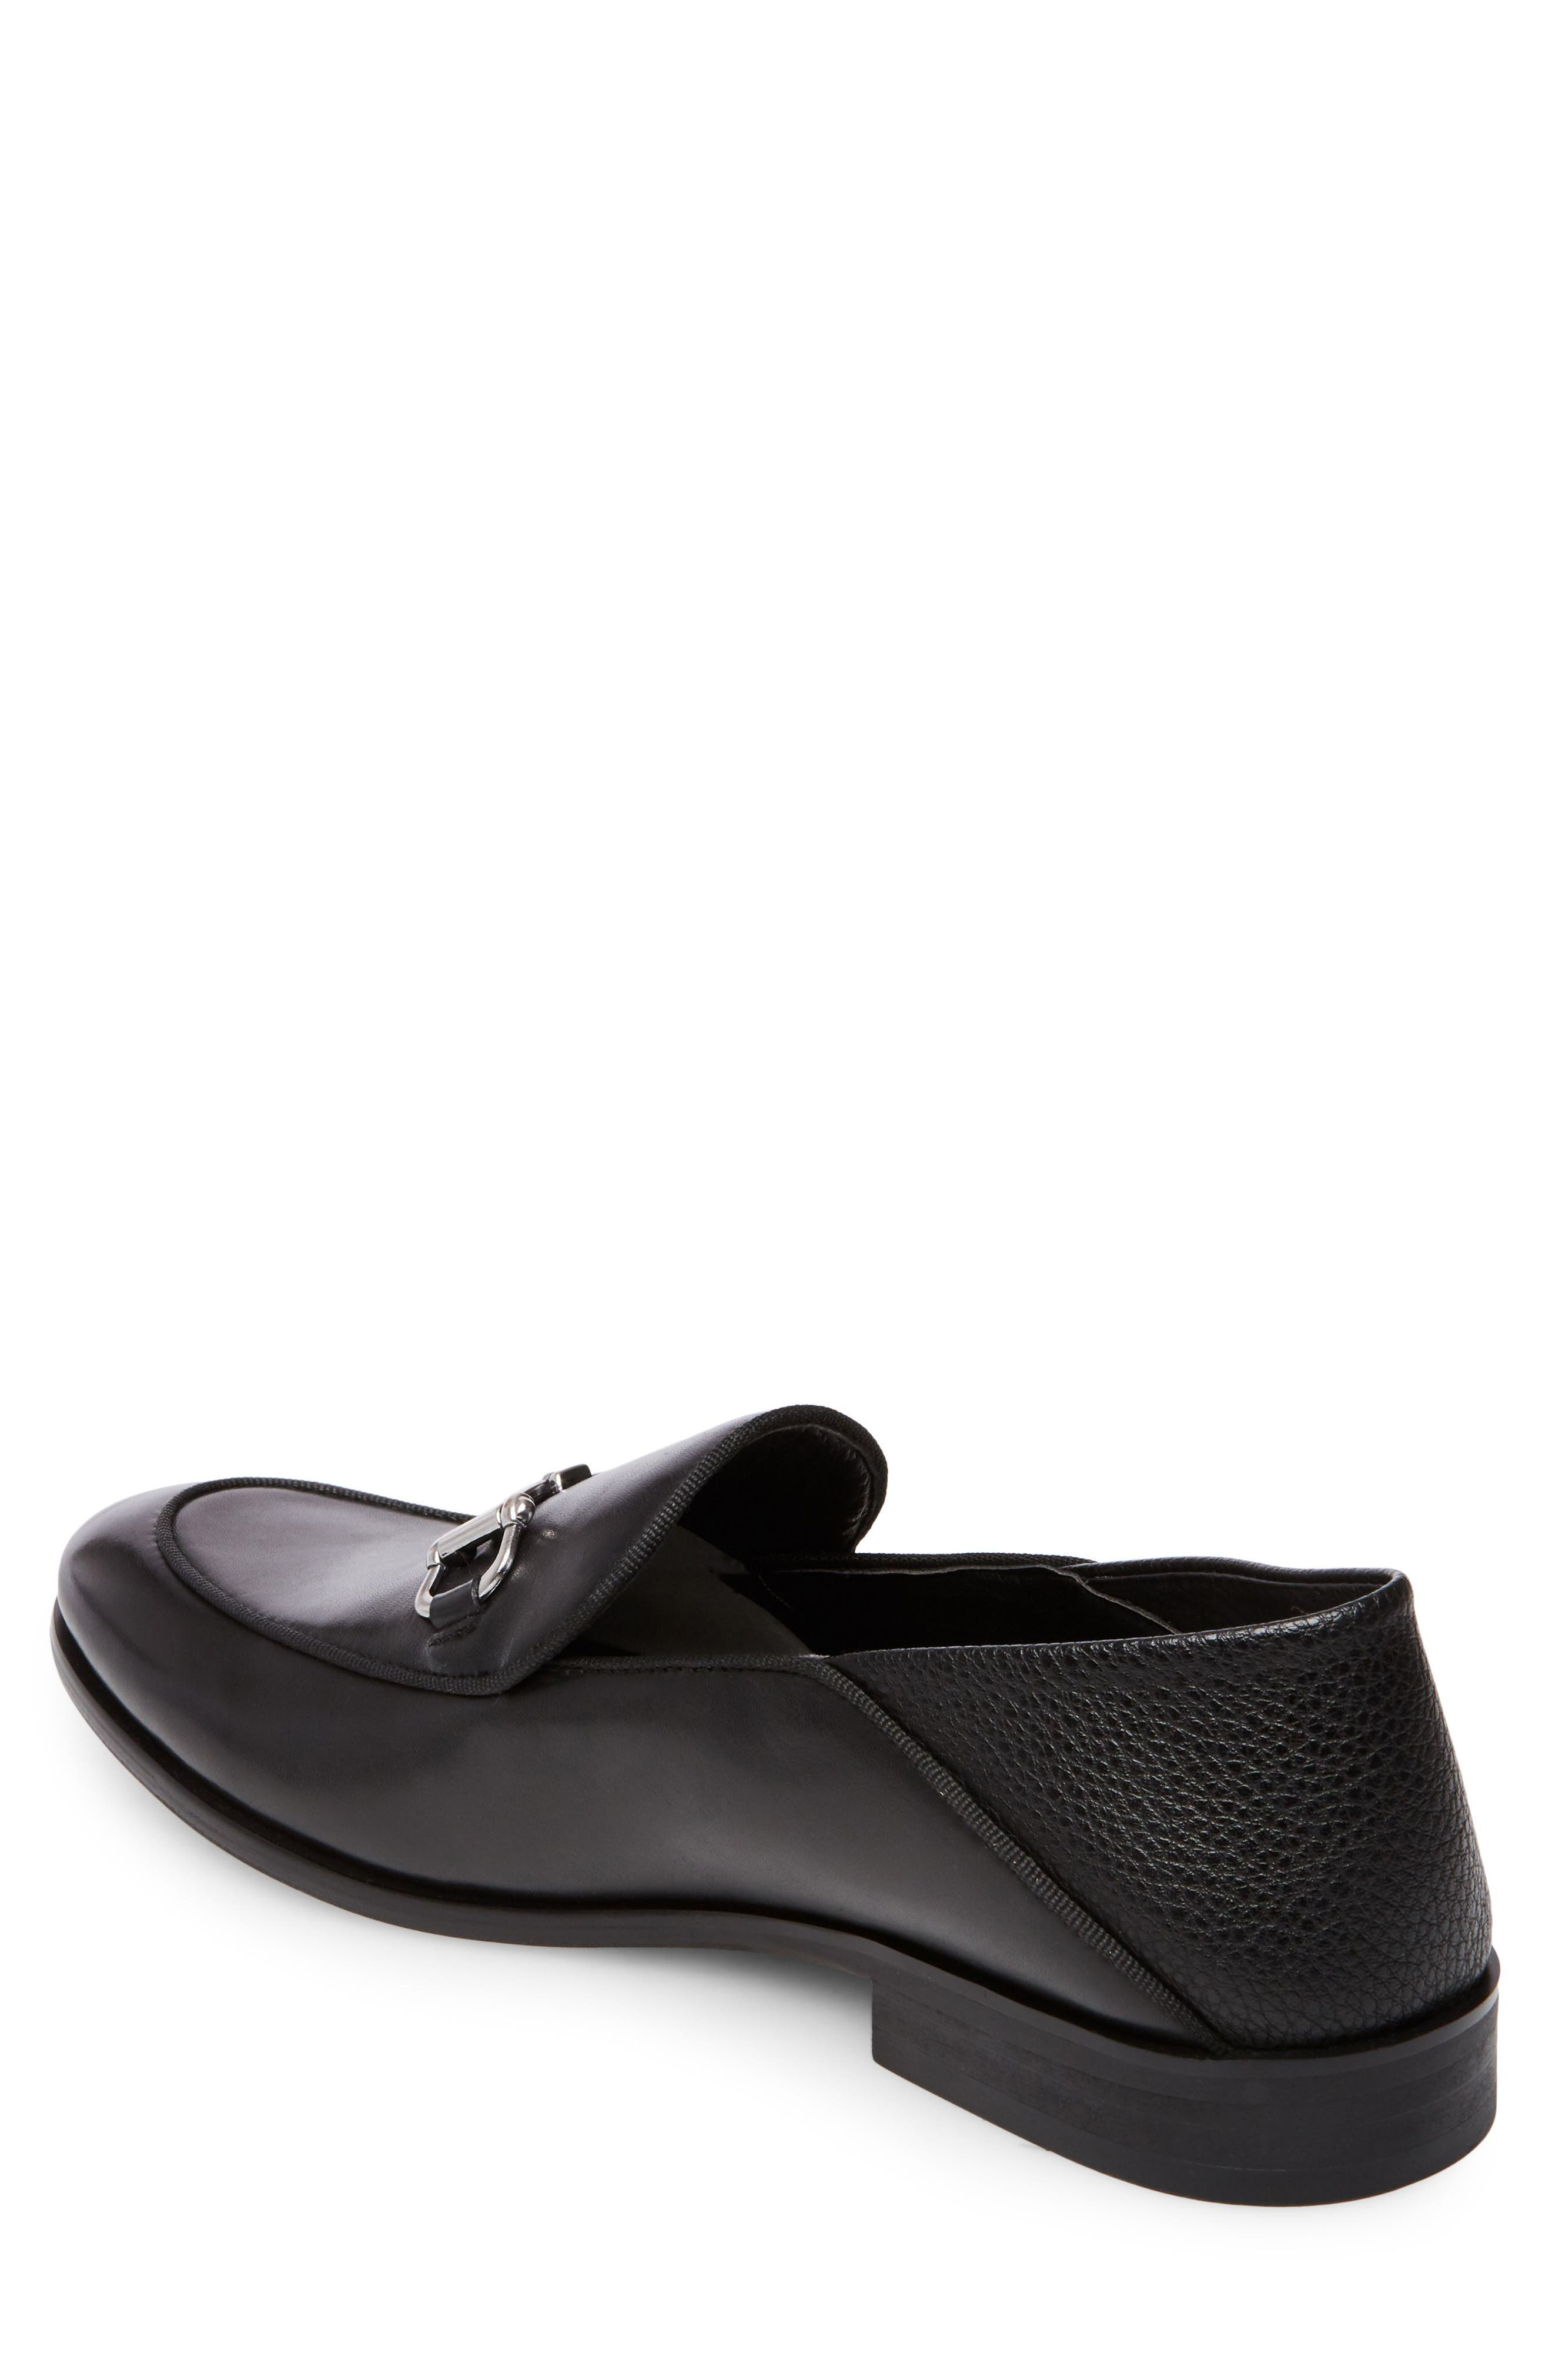 Sauce Bit Collapsible Loafer,                             Alternate thumbnail 5, color,